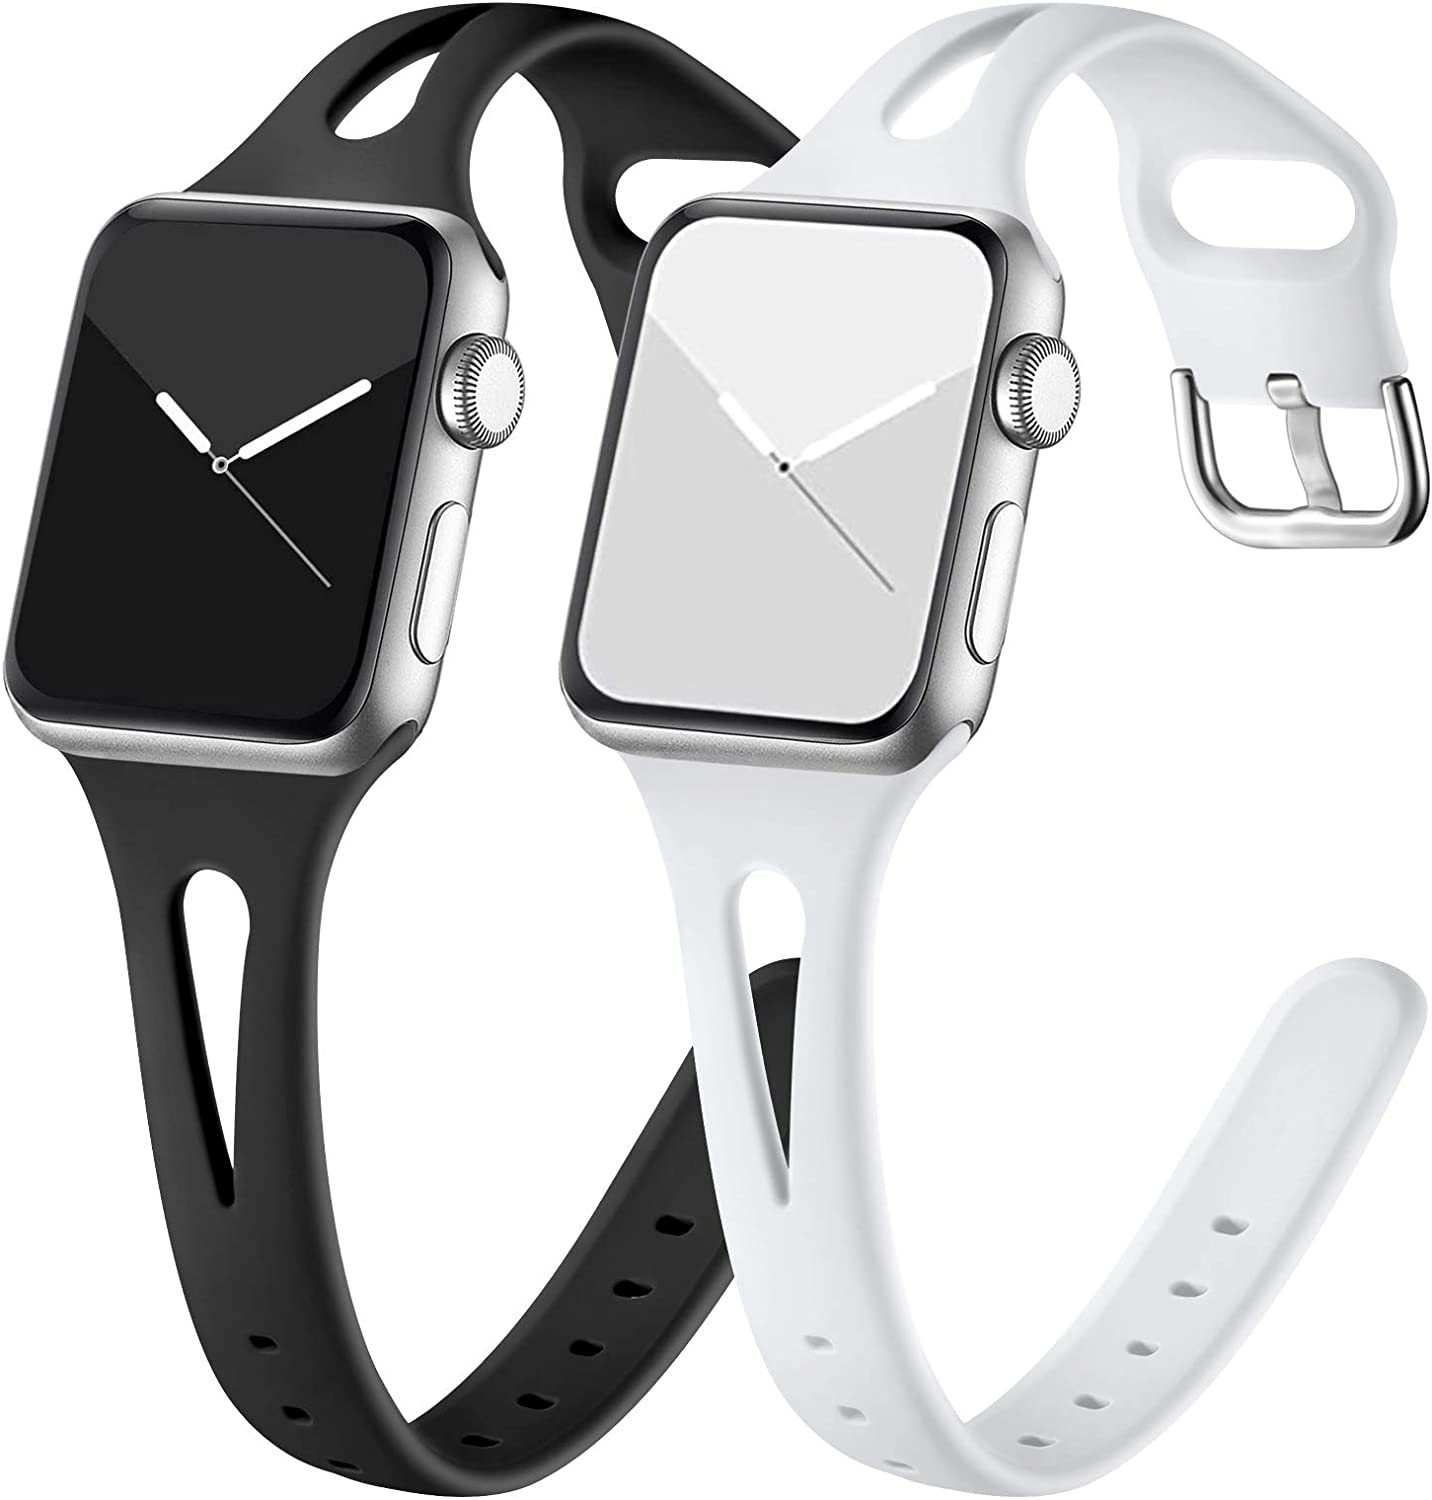 GEAK Compatible with Apple Watch Bands 40mm Women Series 4, Soft Slim Sports Wristband for Apple Watch Band 38mm Women Series 3 38mm Series 2 1 Black/White